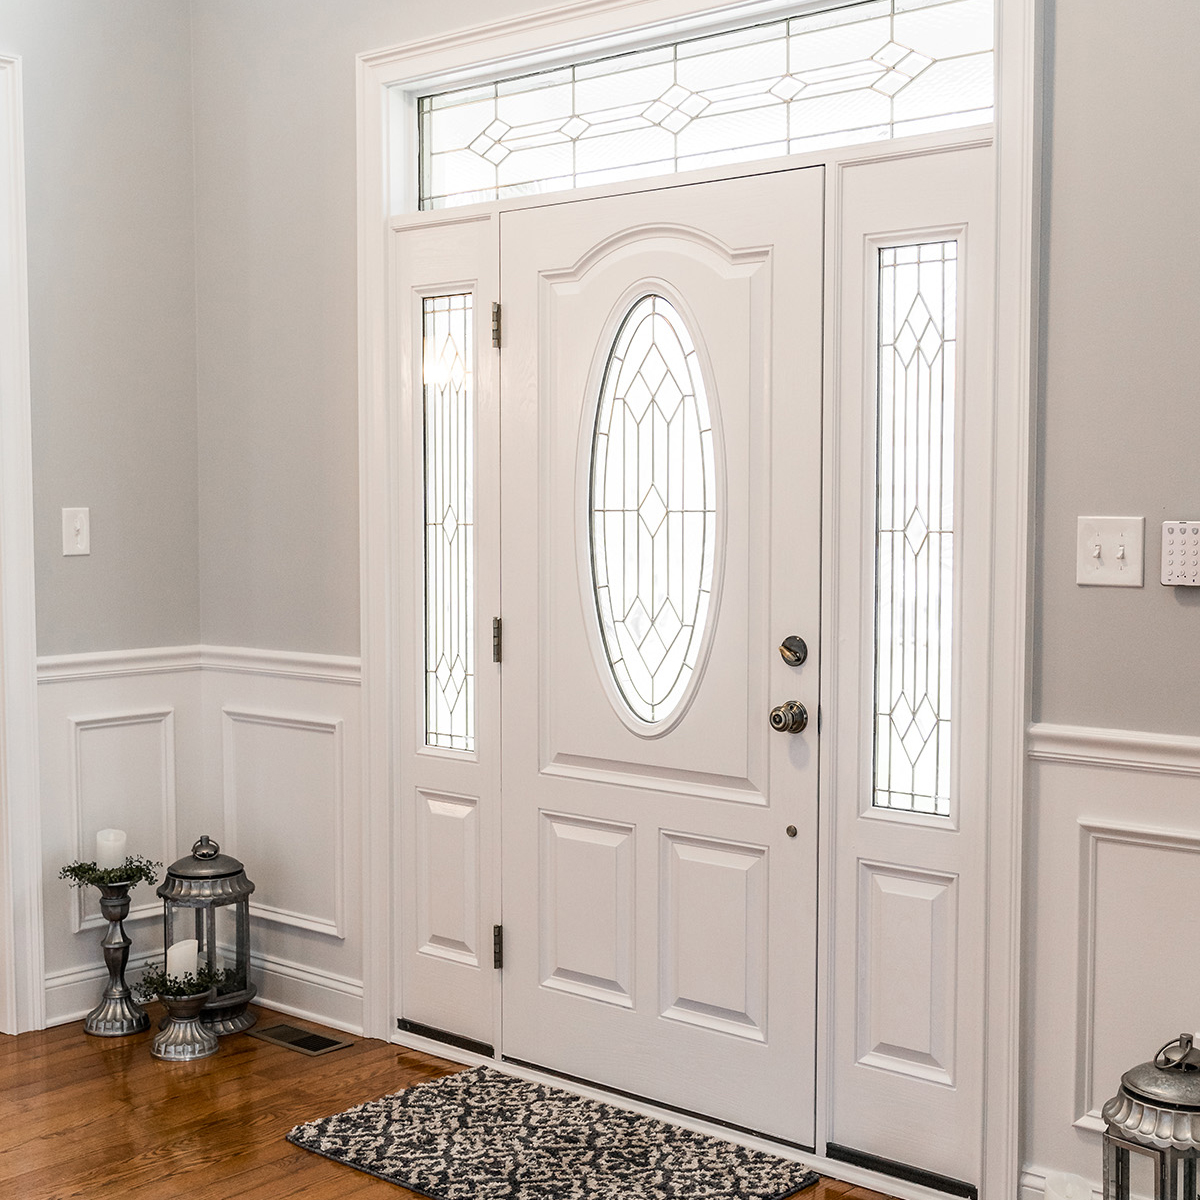 Quality home renovations in Pilesgrove, NJ | Beautiful white and gray entryway and front door.